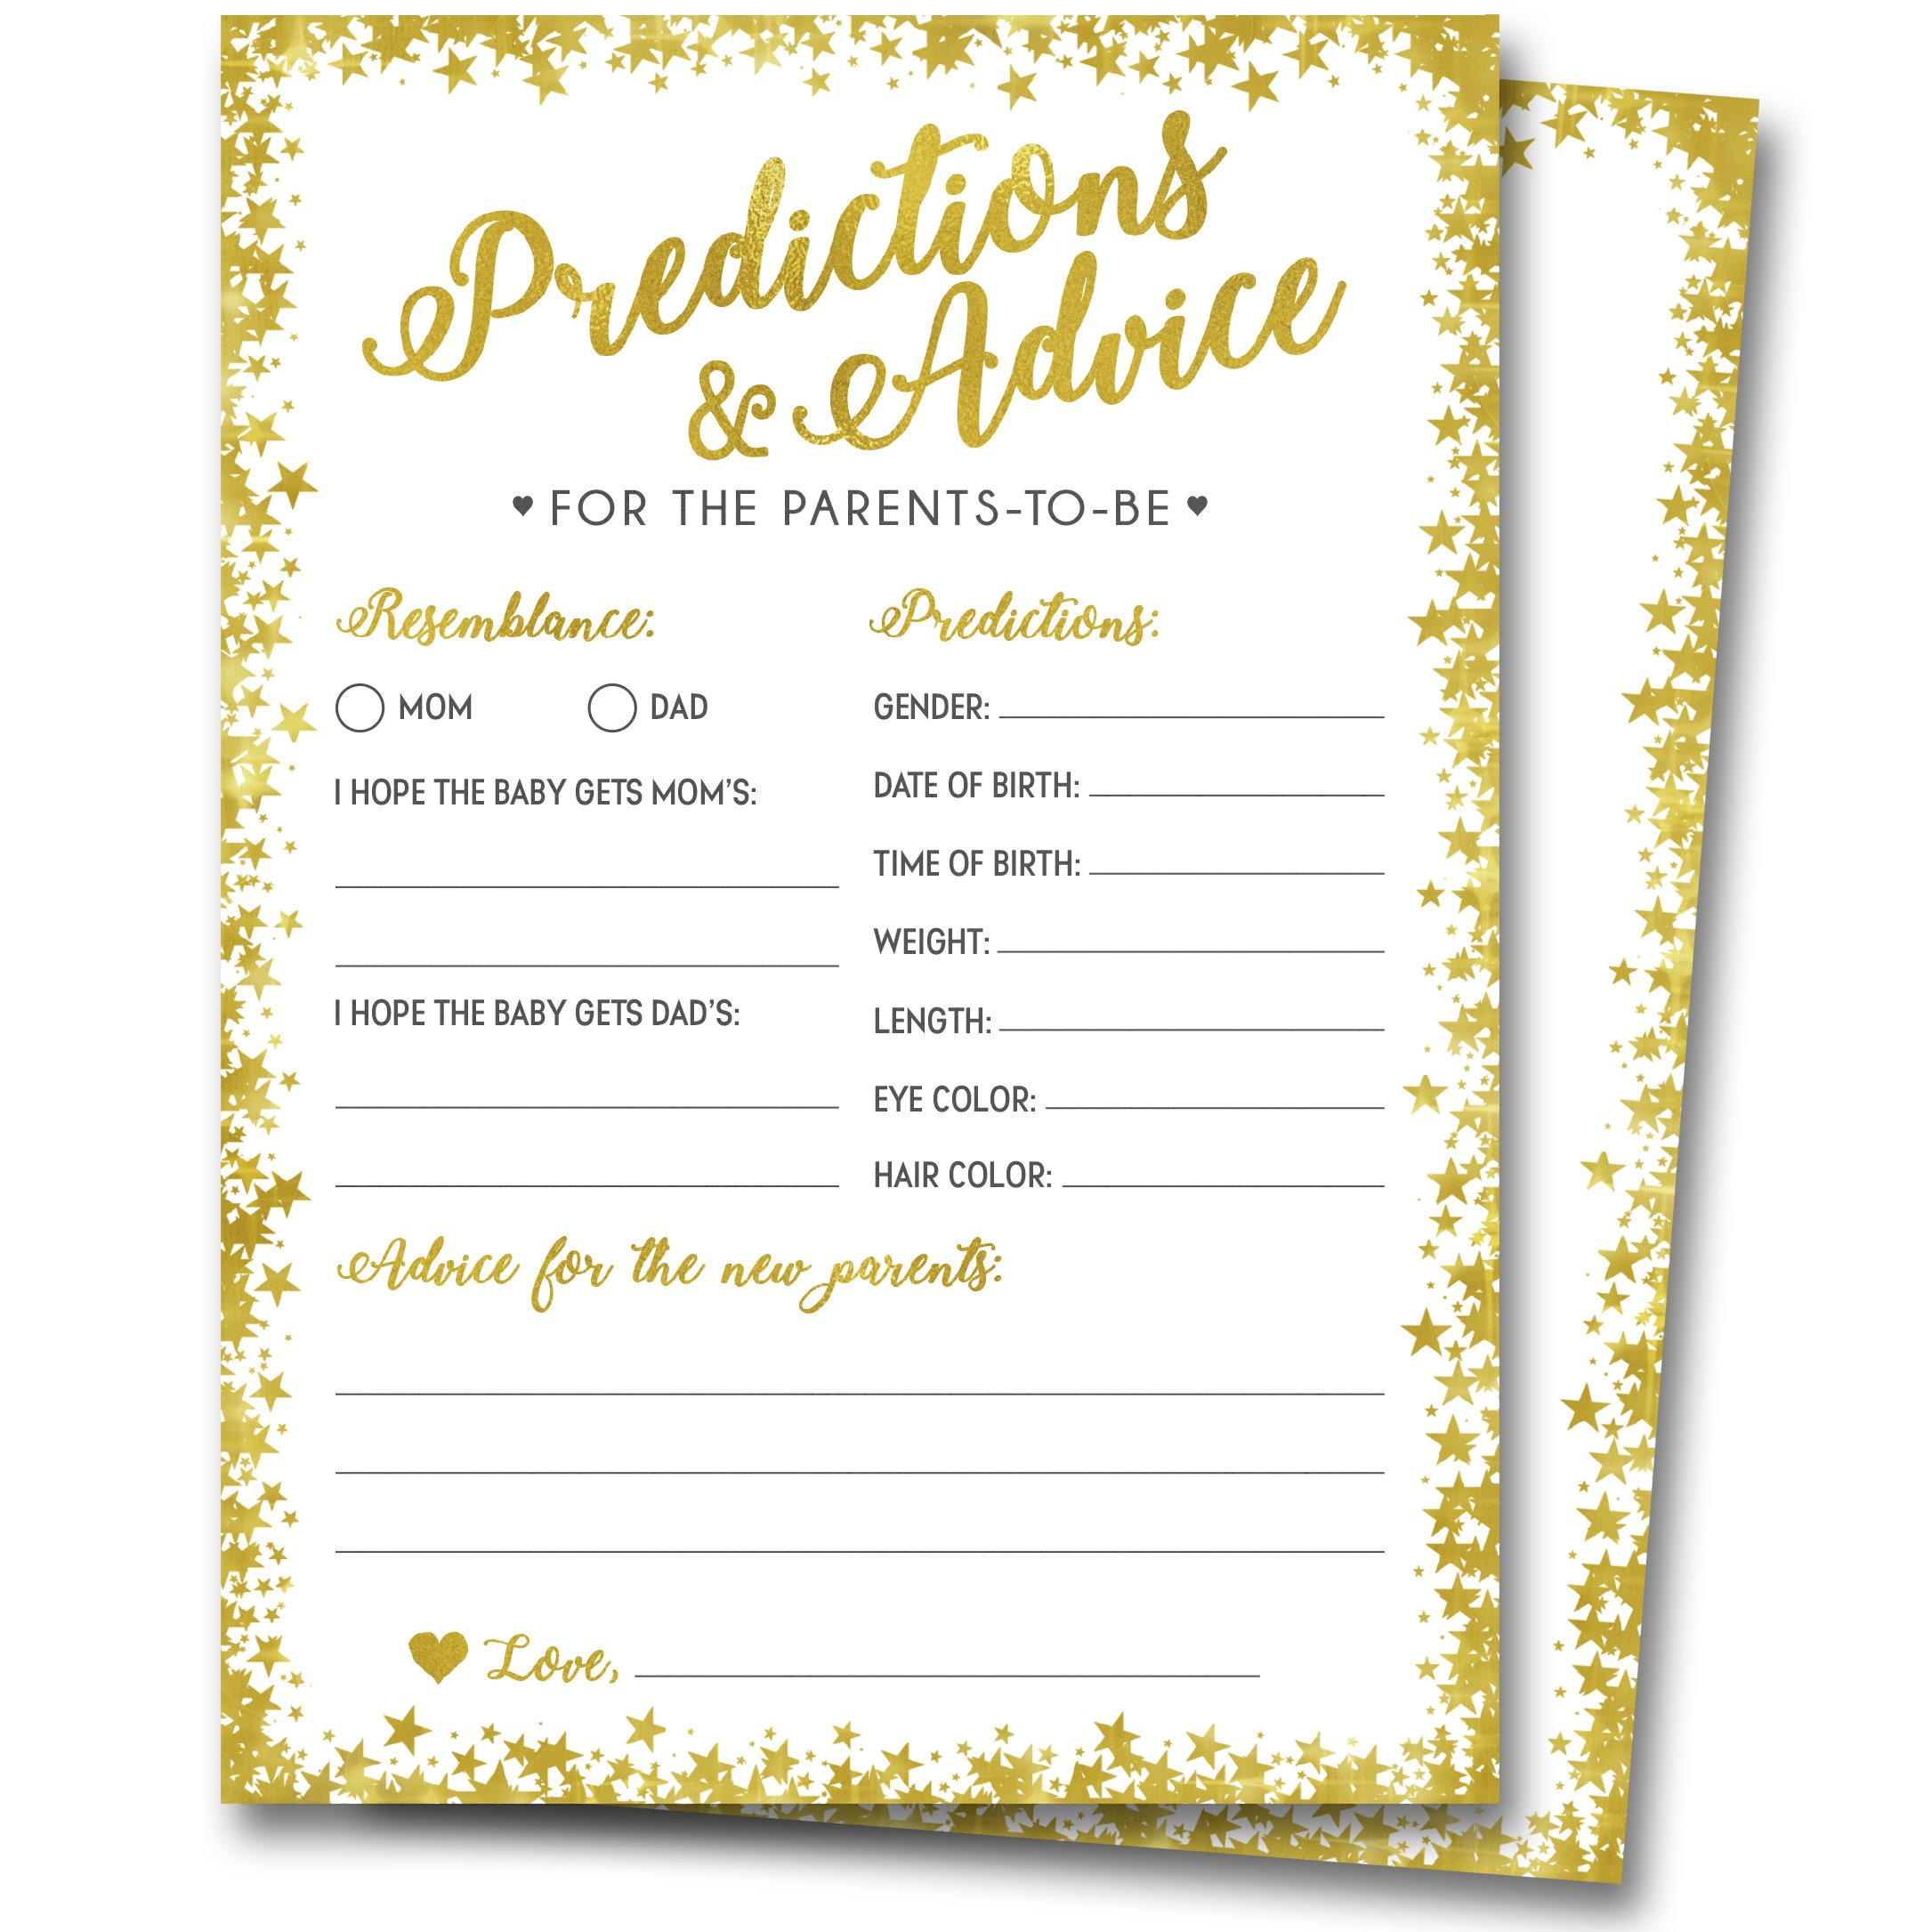 50 Gold Baby Shower Prediction and Advice Cards - Gender Neutral Boy or Girl, Baby Shower Games, Baby Shower Decorations, Baby Shower Favors